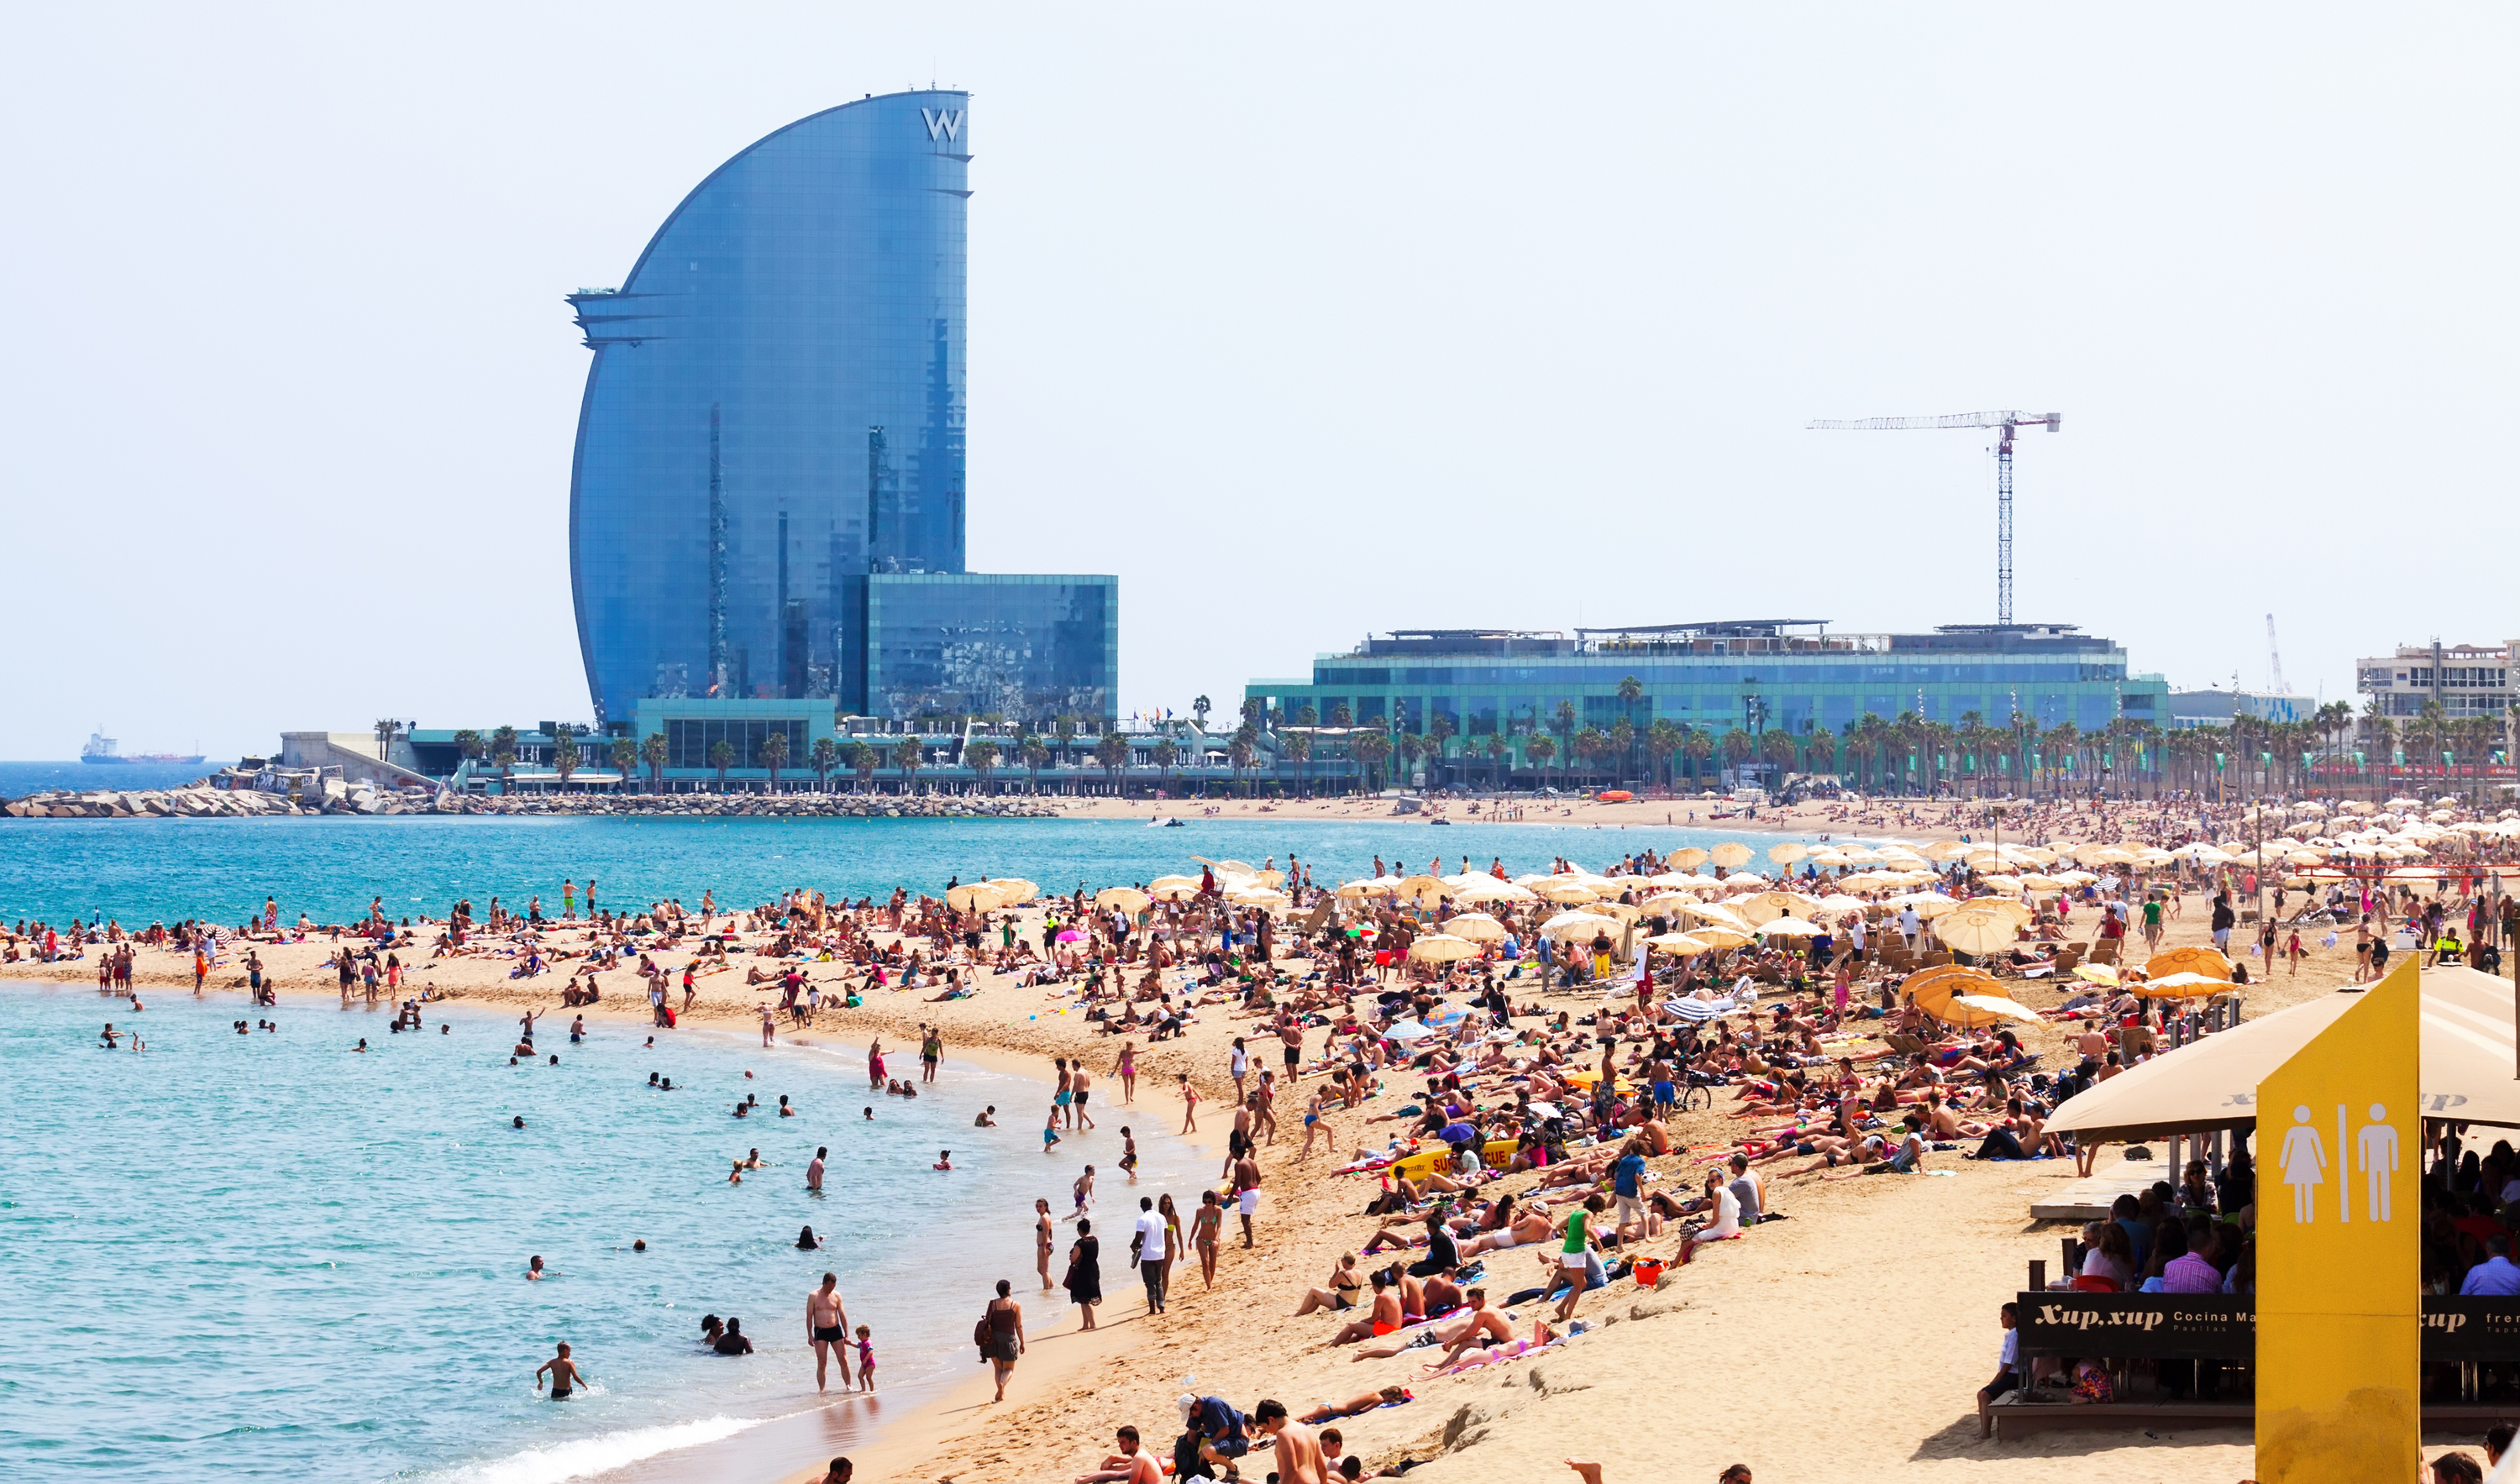 10 ways to get the most out of BCN beaches